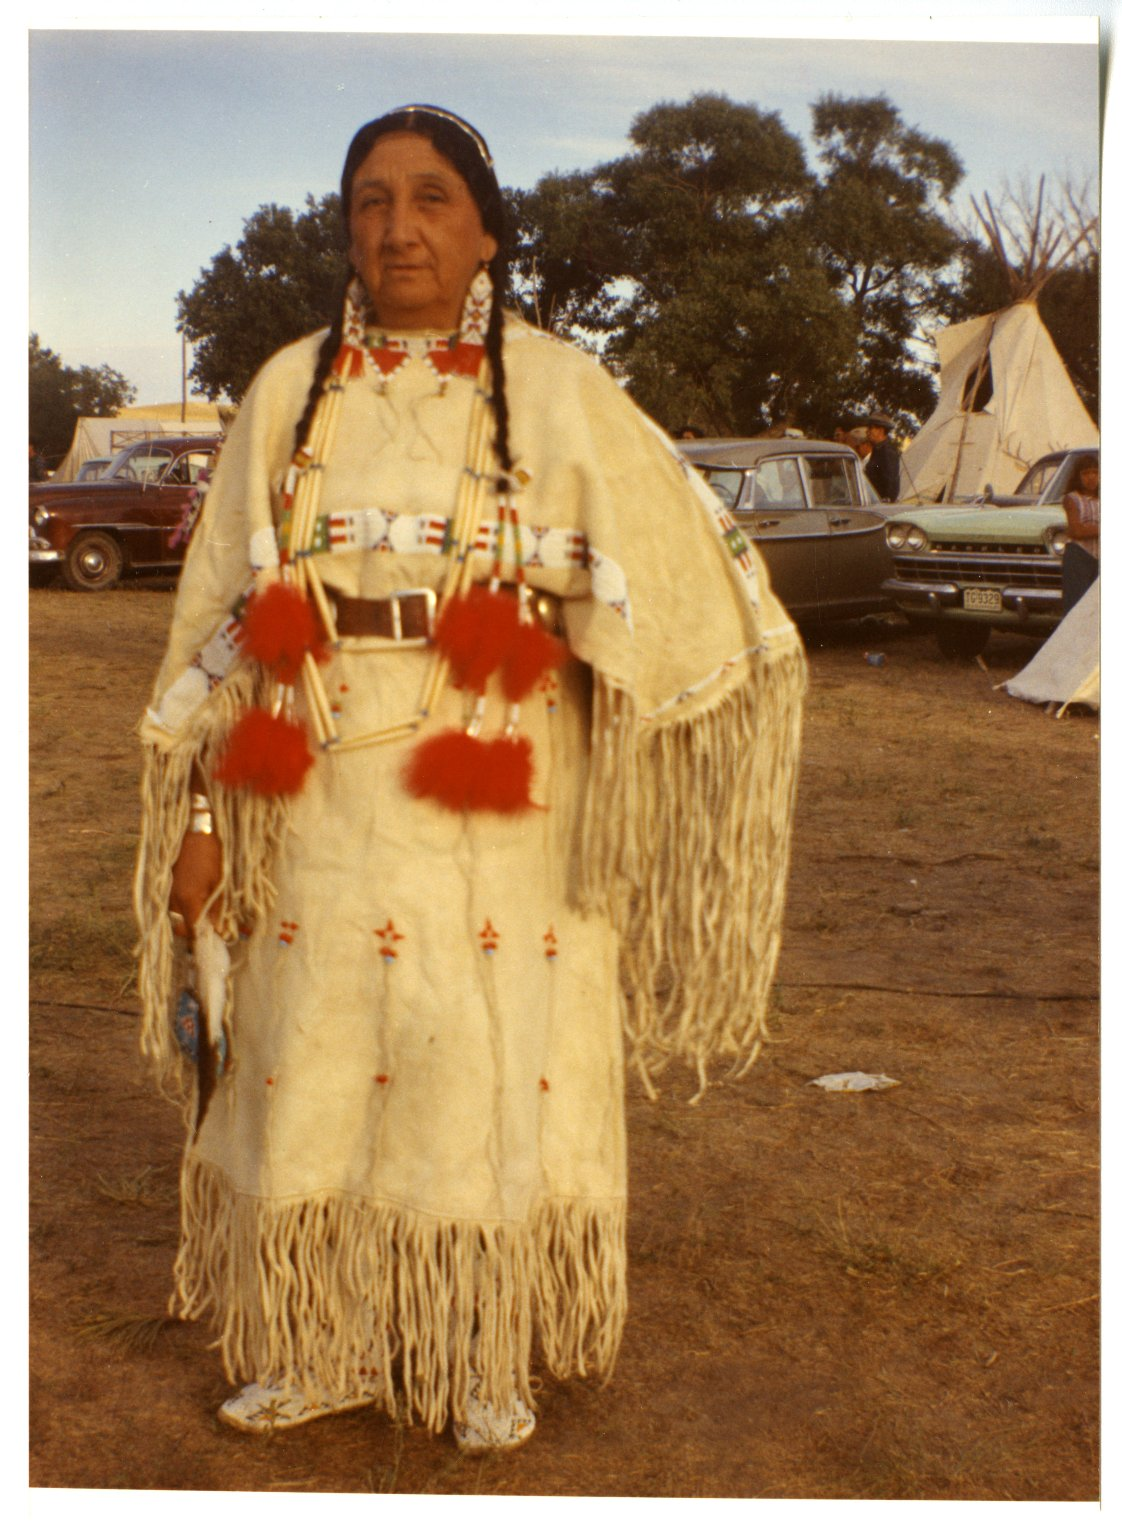 Louise Plenty Holes of the Sioux tribe